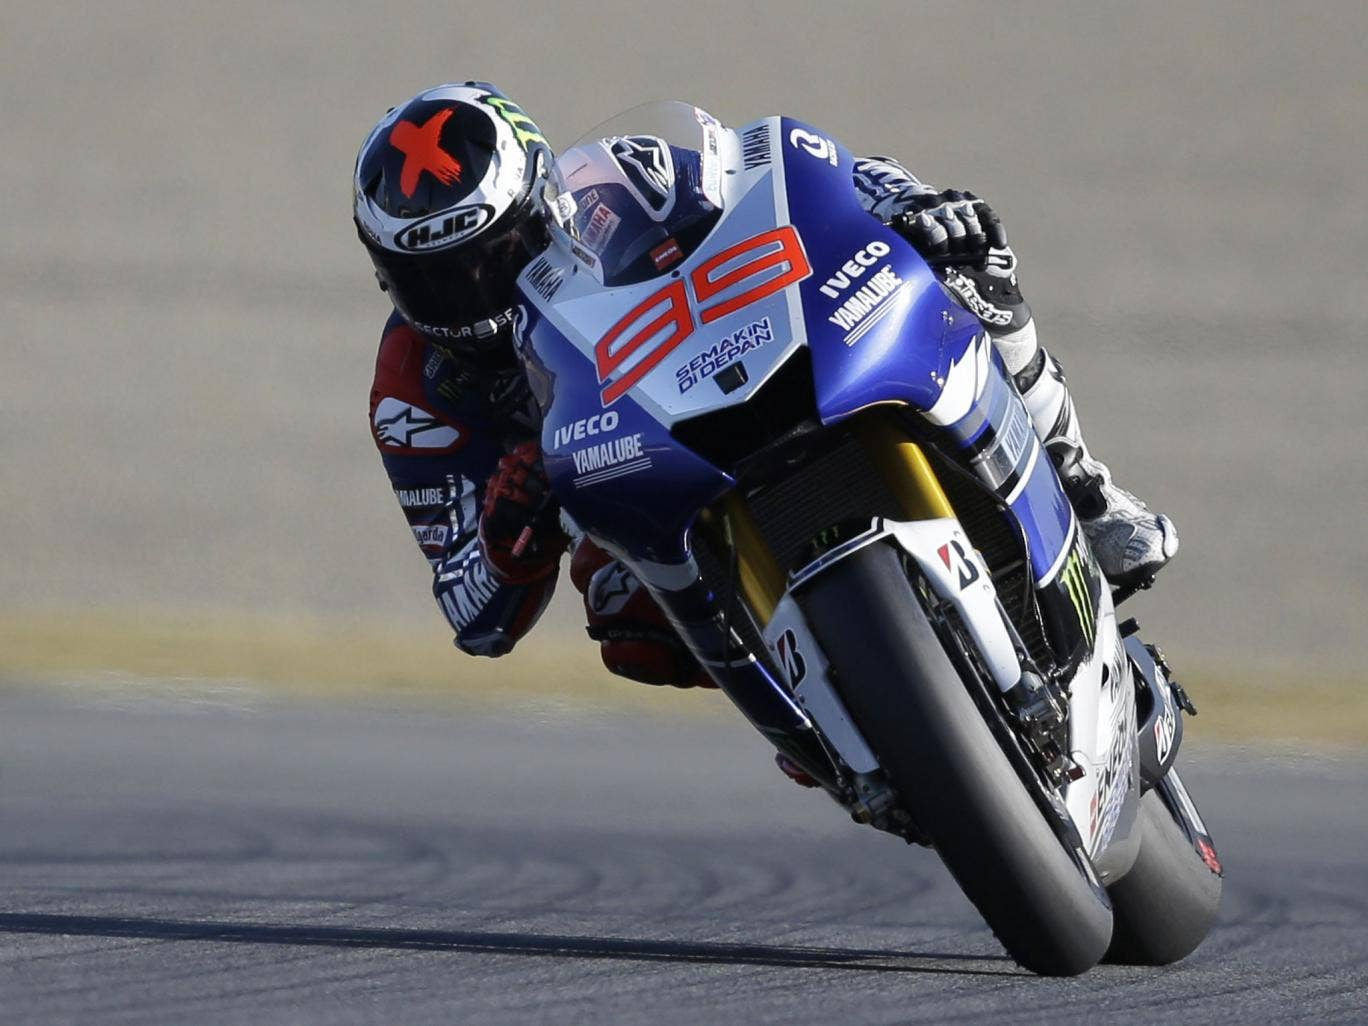 Jorge Lorenzo led from start to finish in the Japan Grand Prix